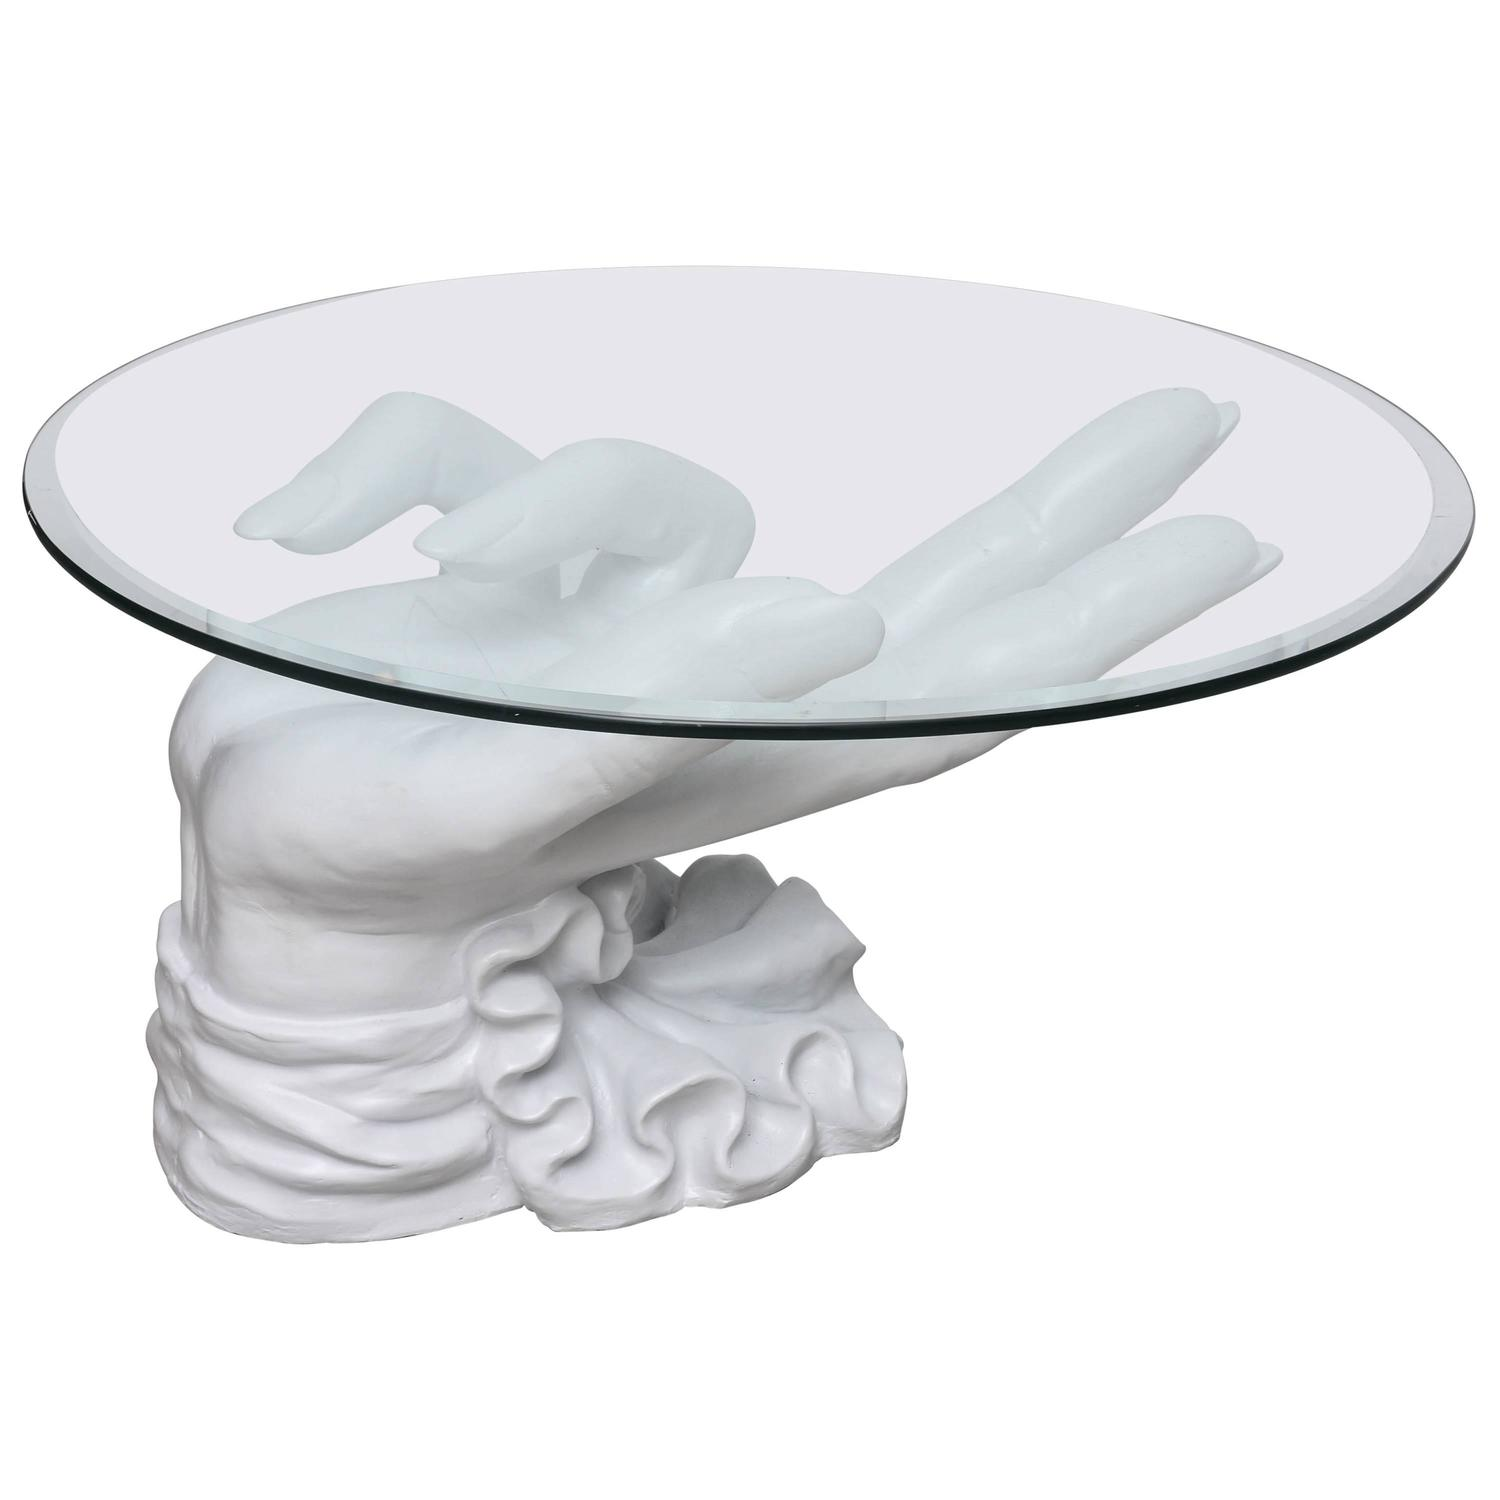 Charming Hand Coffee Table Part - 1: Sculptural White Plaster Hand Coffee Table For Sale At 1stdibs